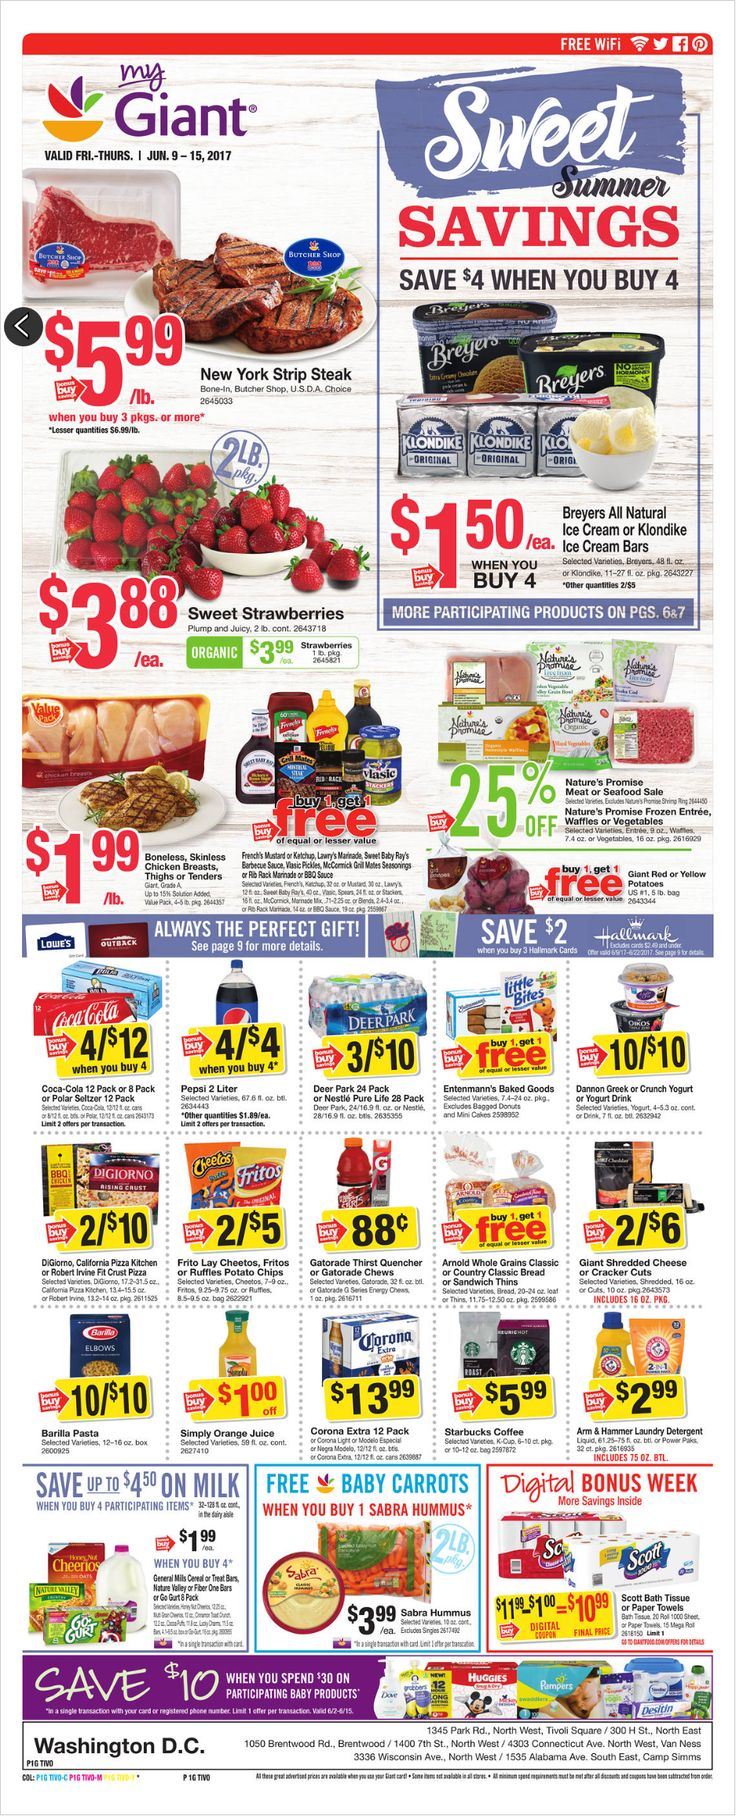 Giant Food Weekly Ad June 9 - 15, 2017 - http://www.olcatalog.com/grocery/giant-food-weekly-ad.html